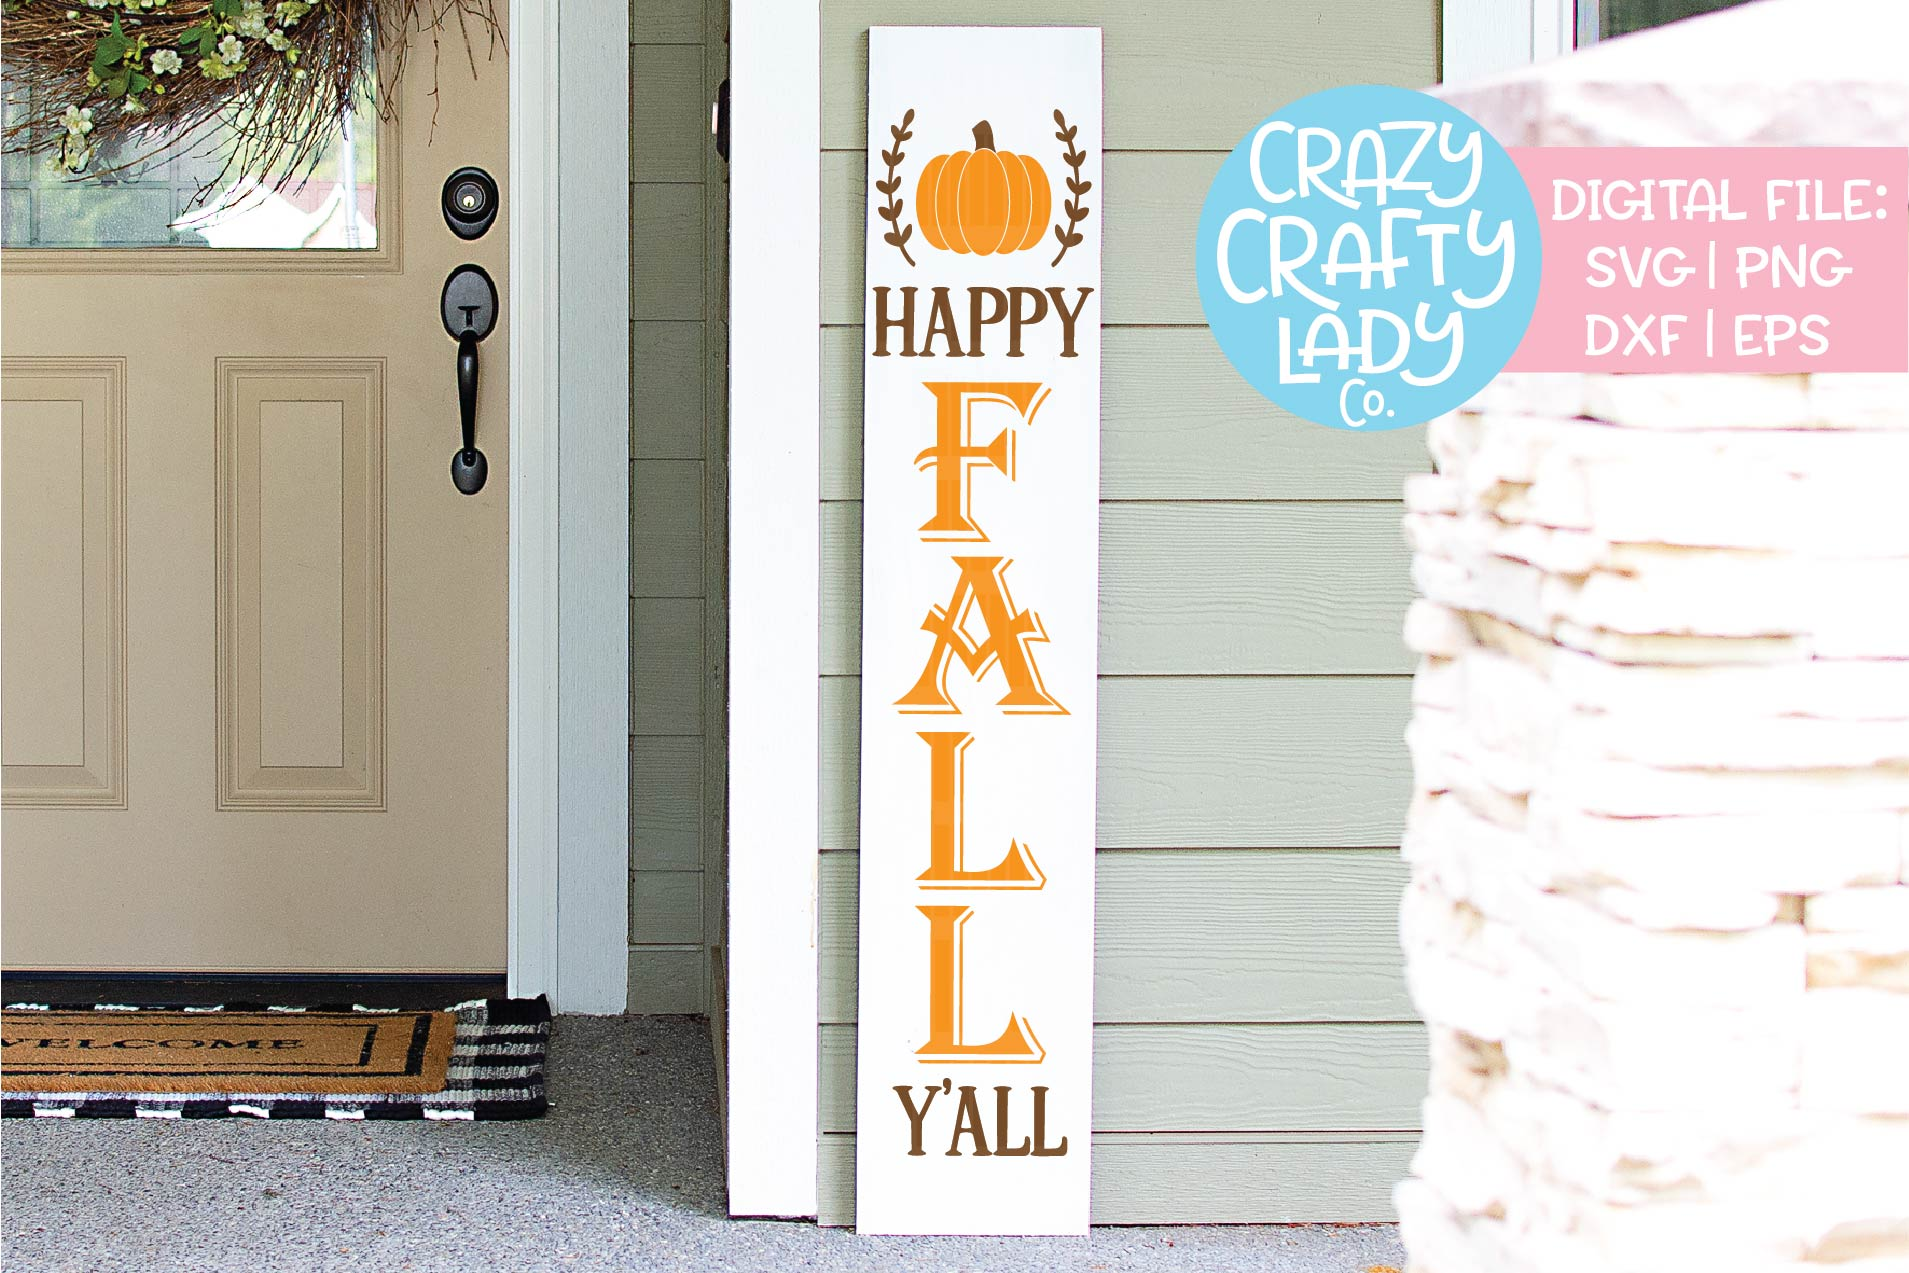 Happy Fall Y'all Porch Sign SVG DXF EPS PNG Cut File example image 1